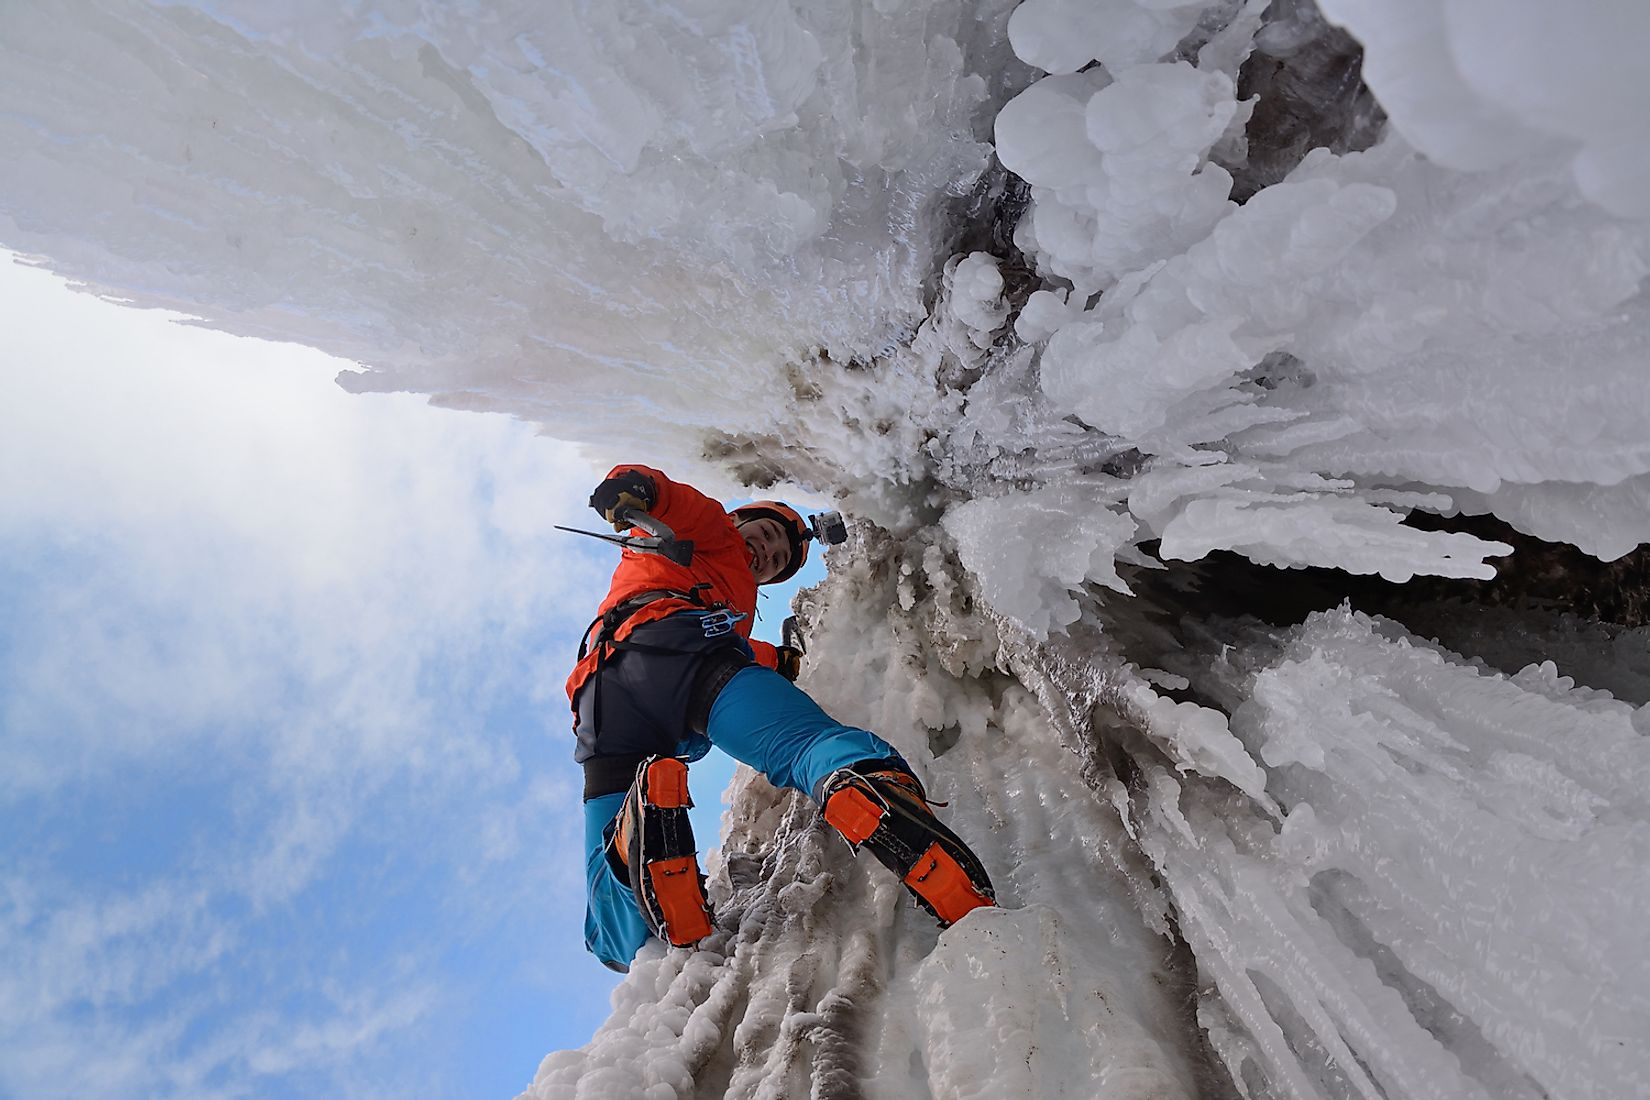 An ice climber on a waterfall. Image credit: Artem Novichenko/Shutterstock.com